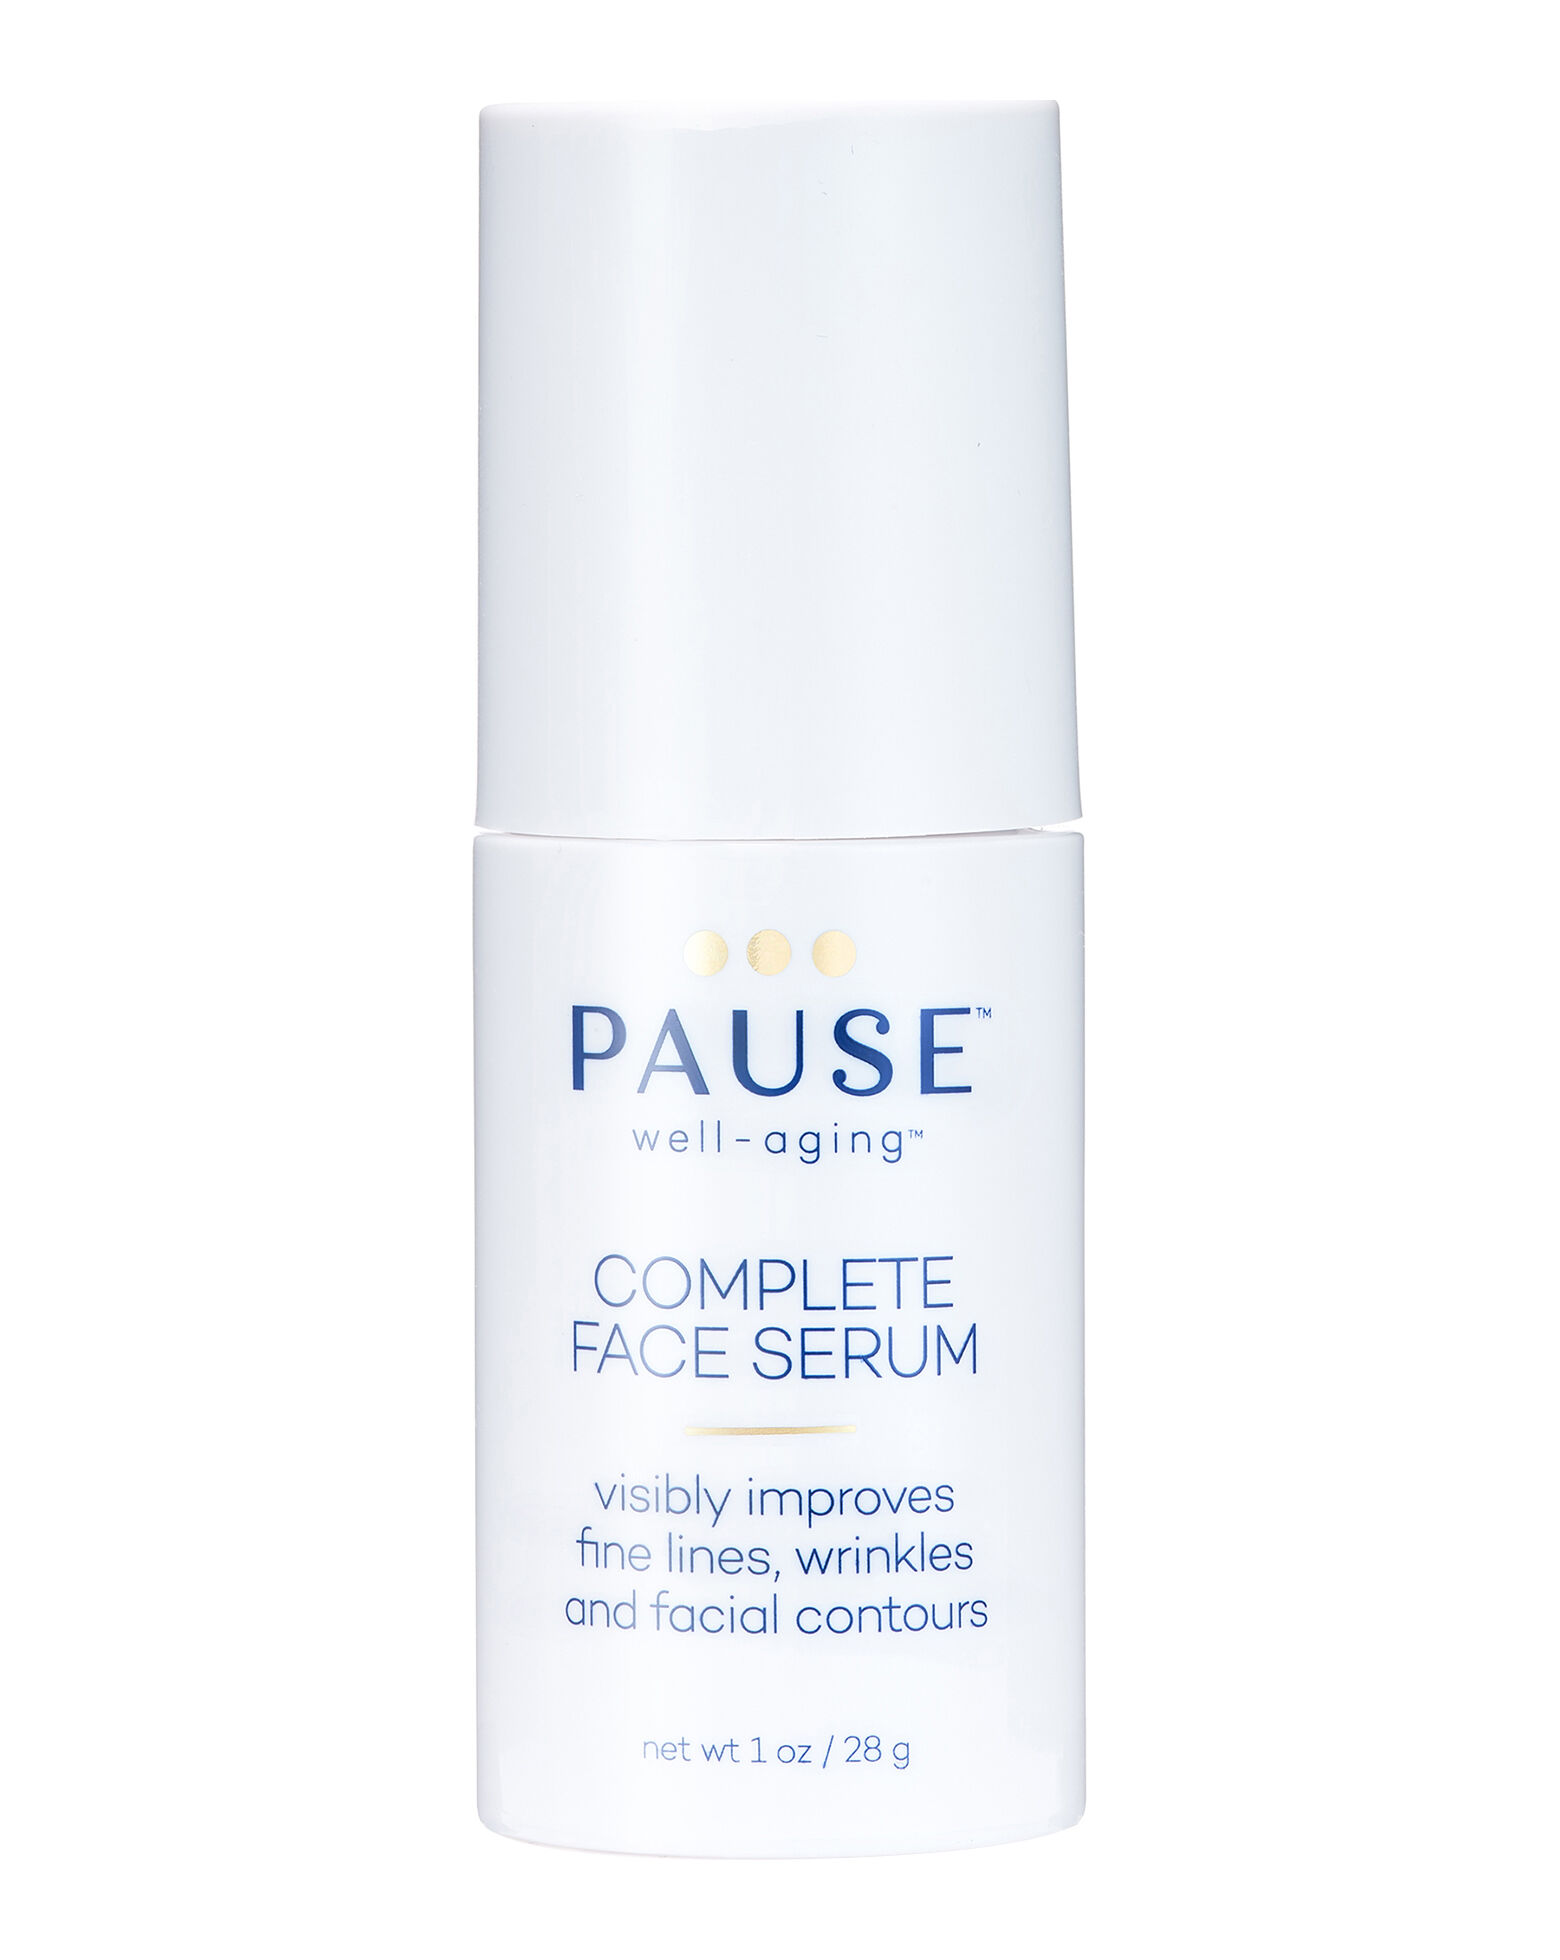 Pause Well-Aging - Complete Face Serum